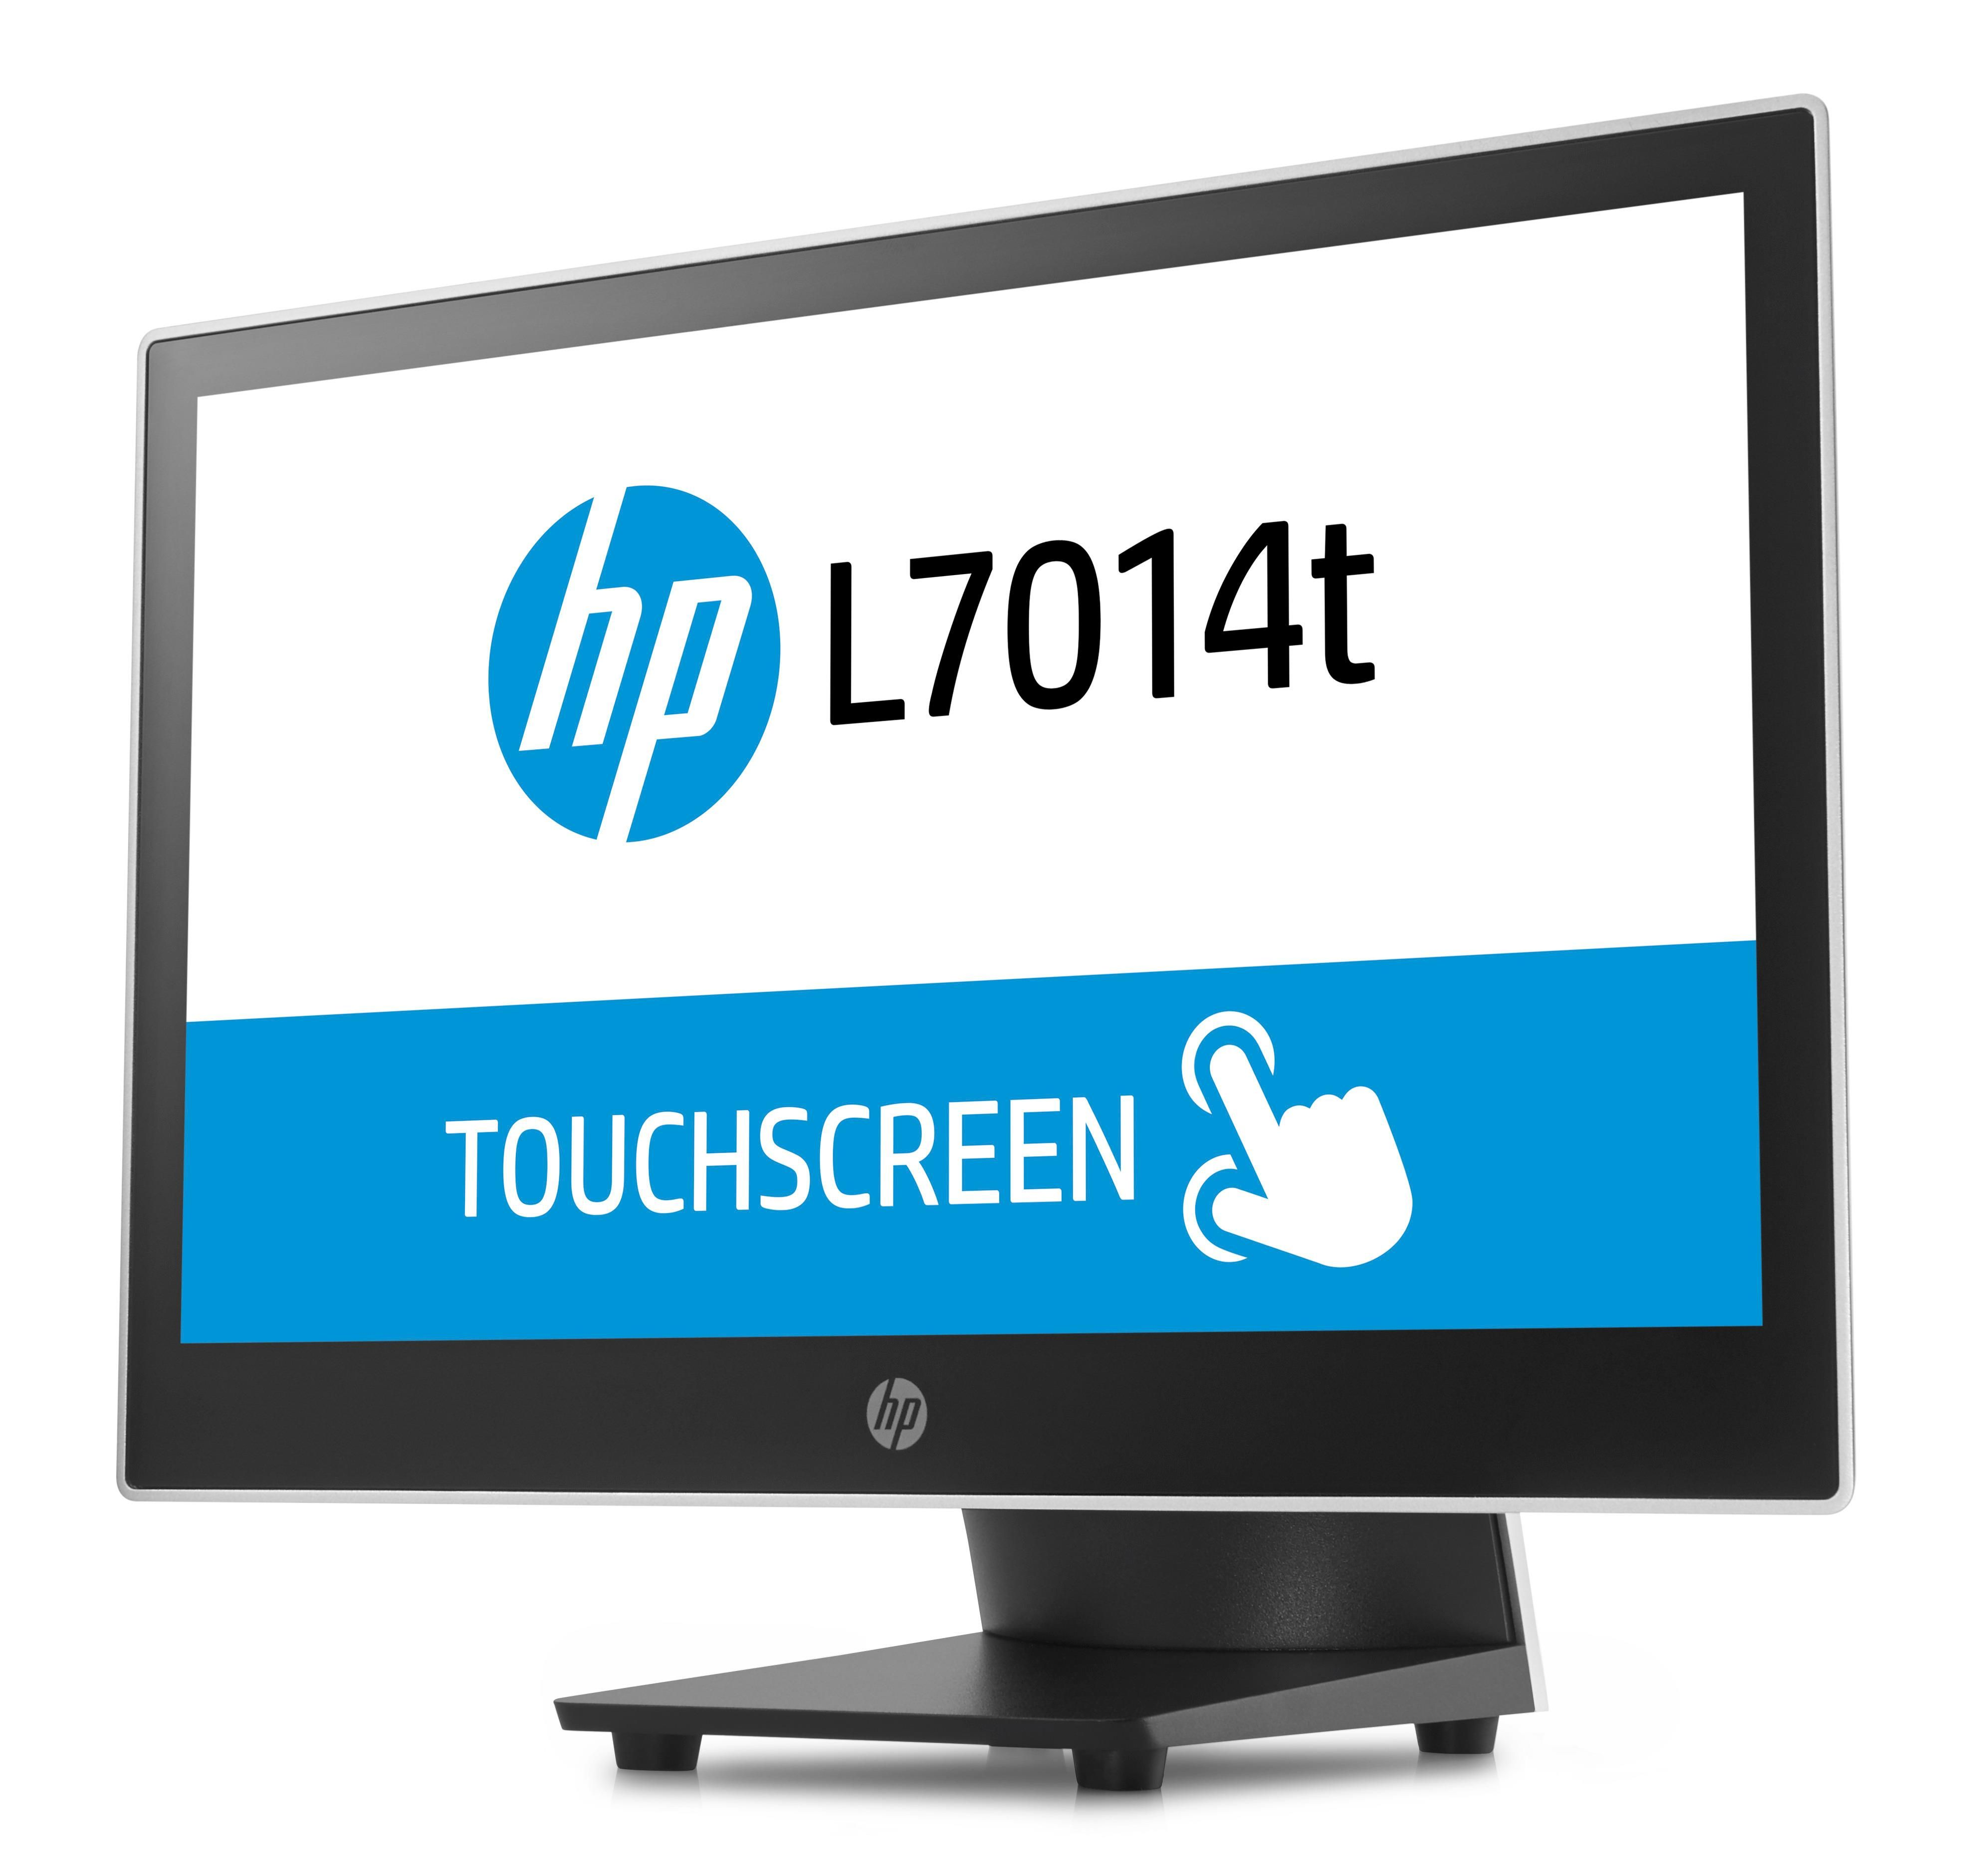 HP L7014t (14 inch) Retail Touch Monitor